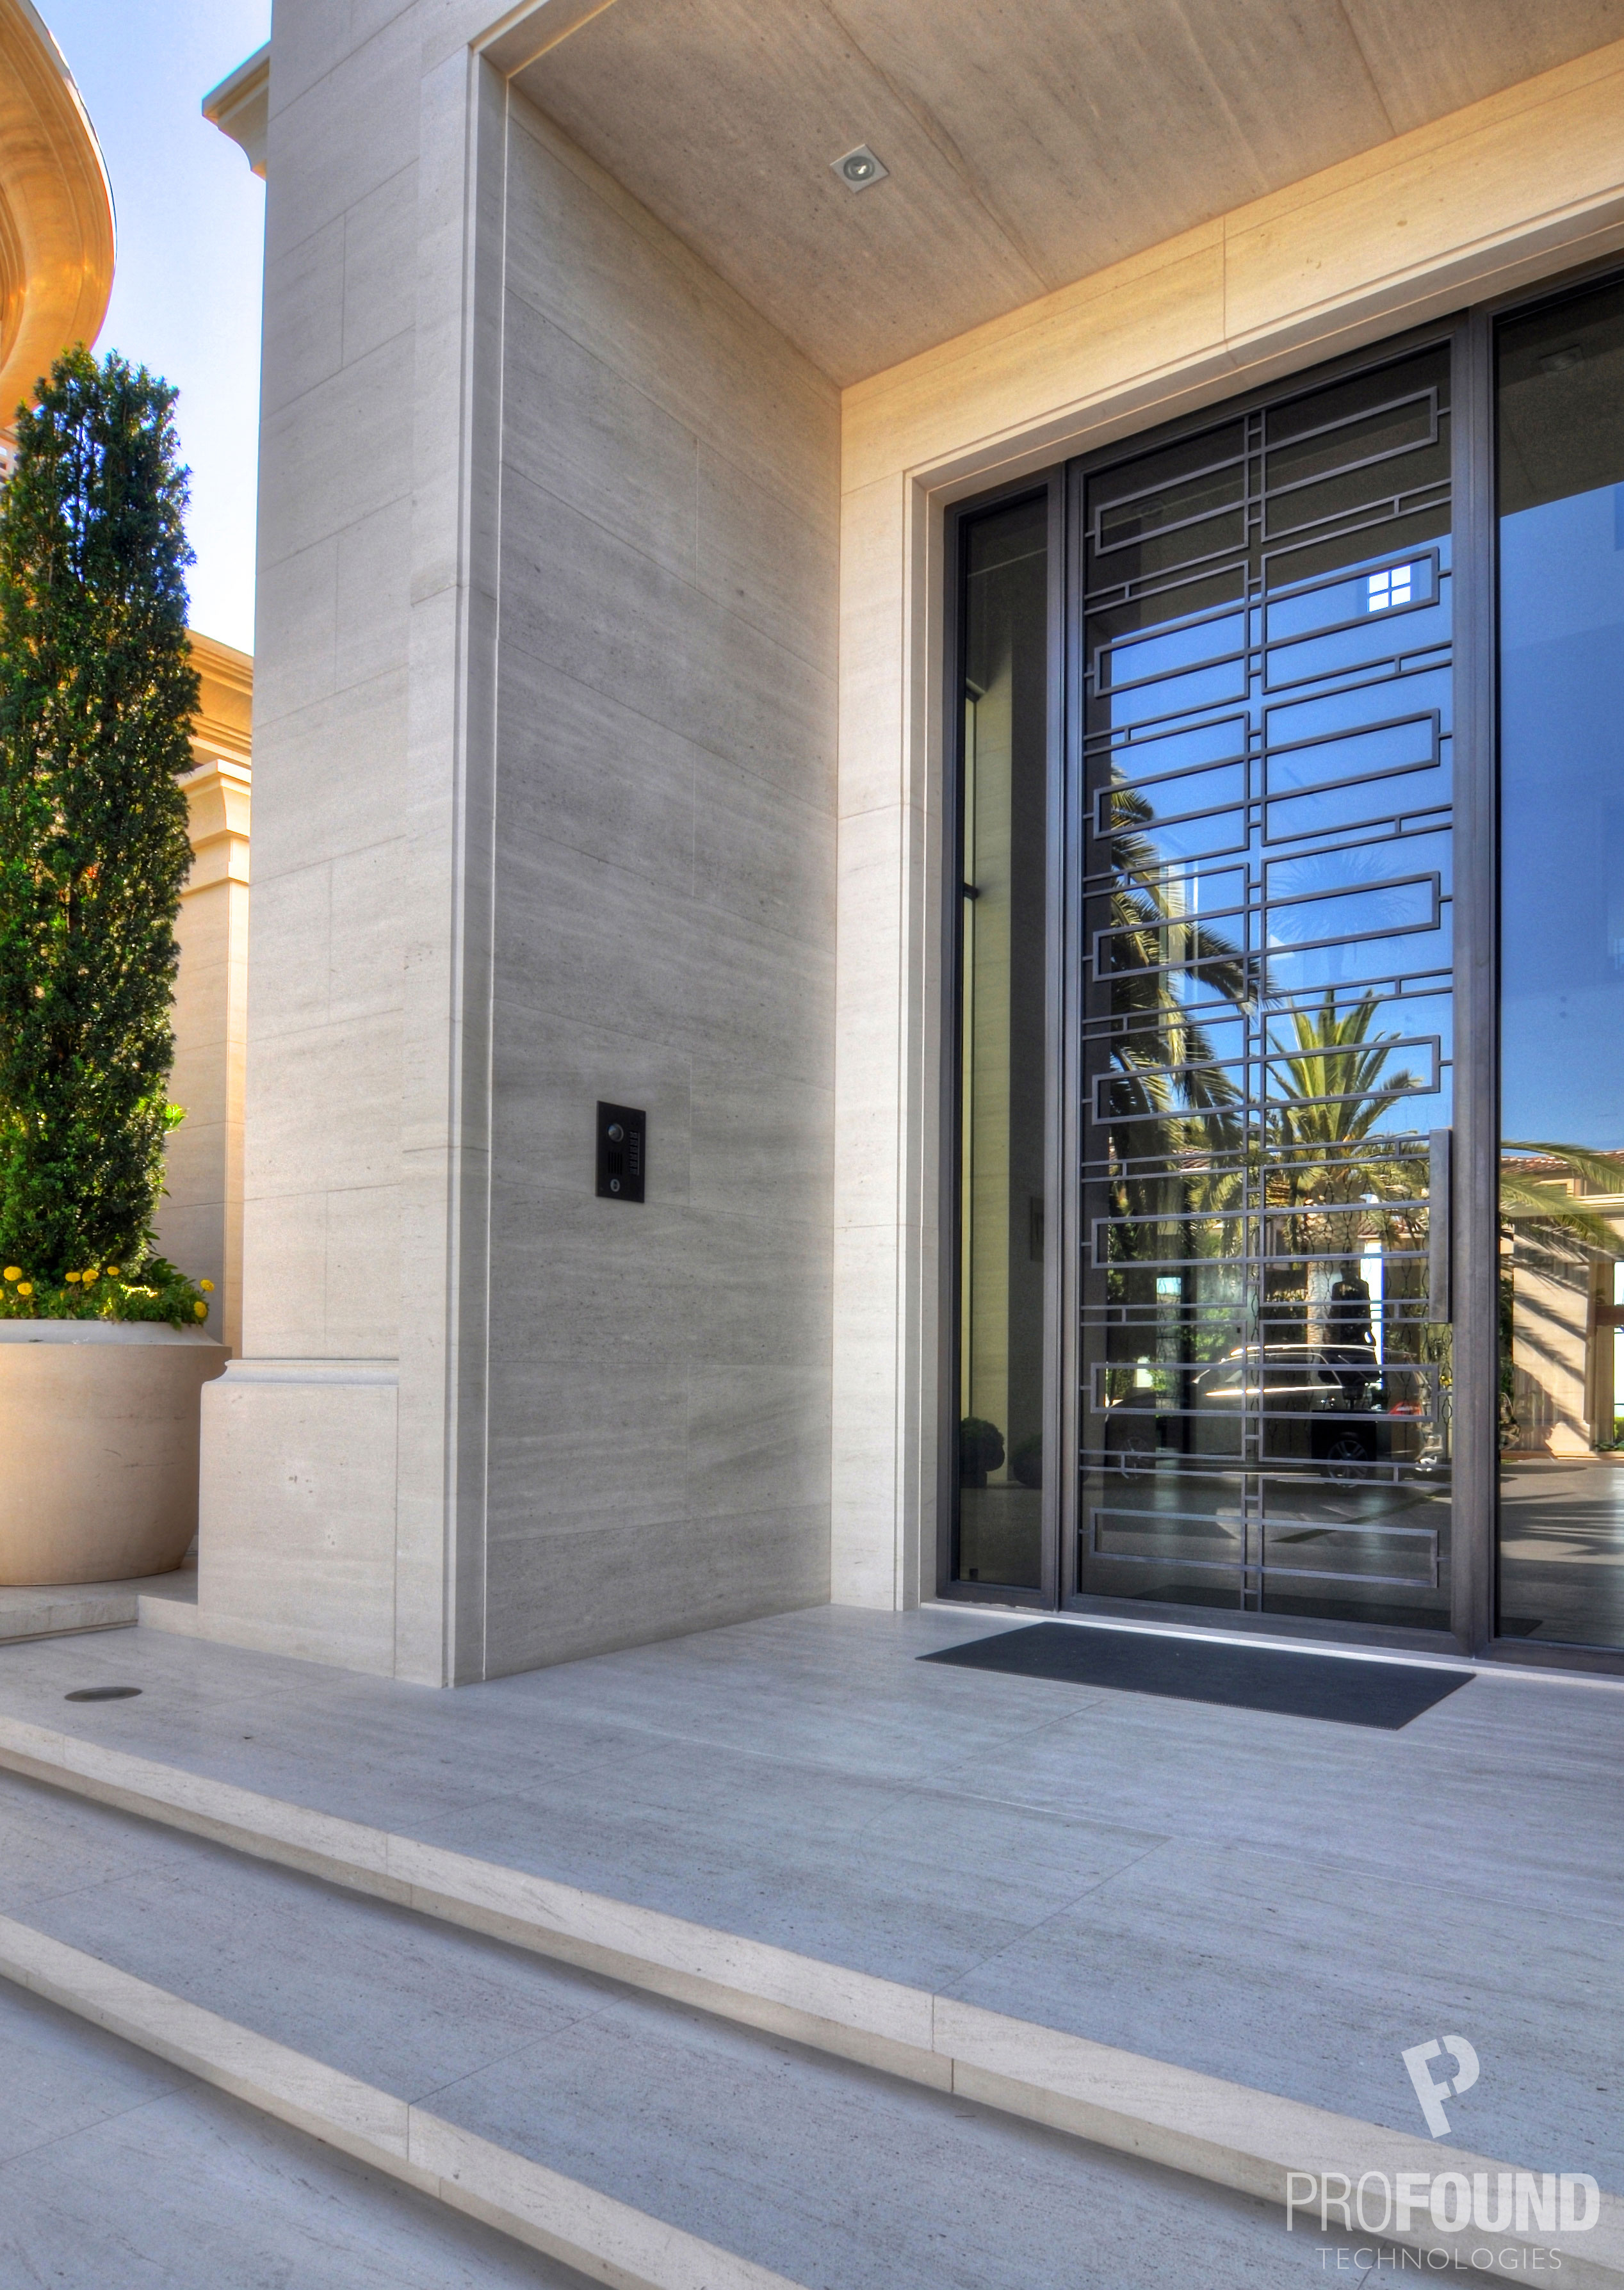 Main Door Entrance with Security Keypad